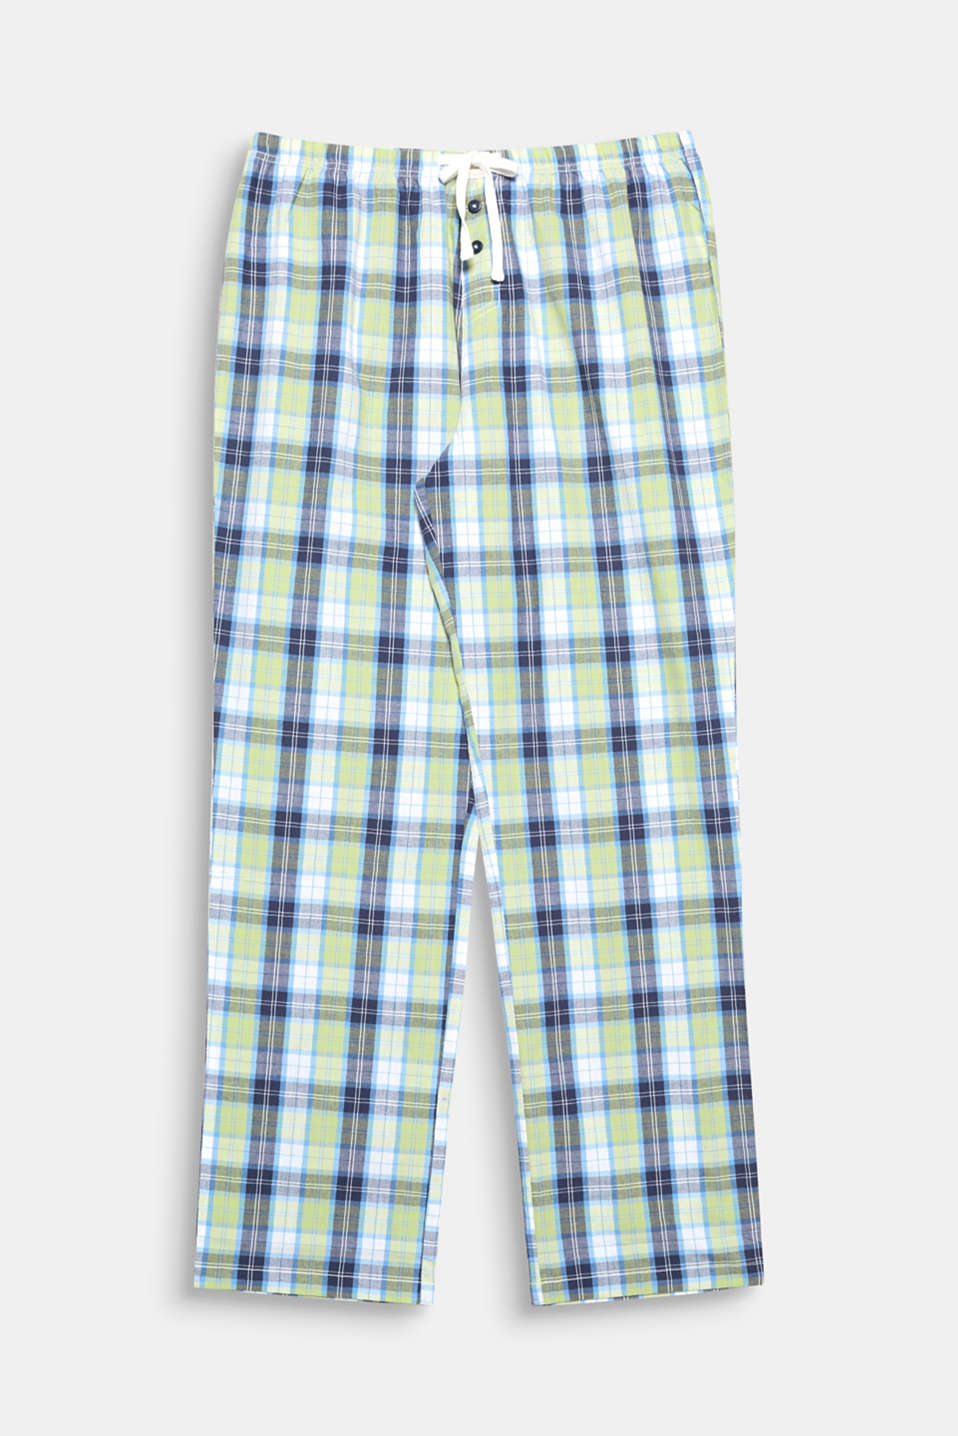 Lightweight cotton meets fresh, modern checks - a great mix for these cool and comfortable pyjamas bottoms!